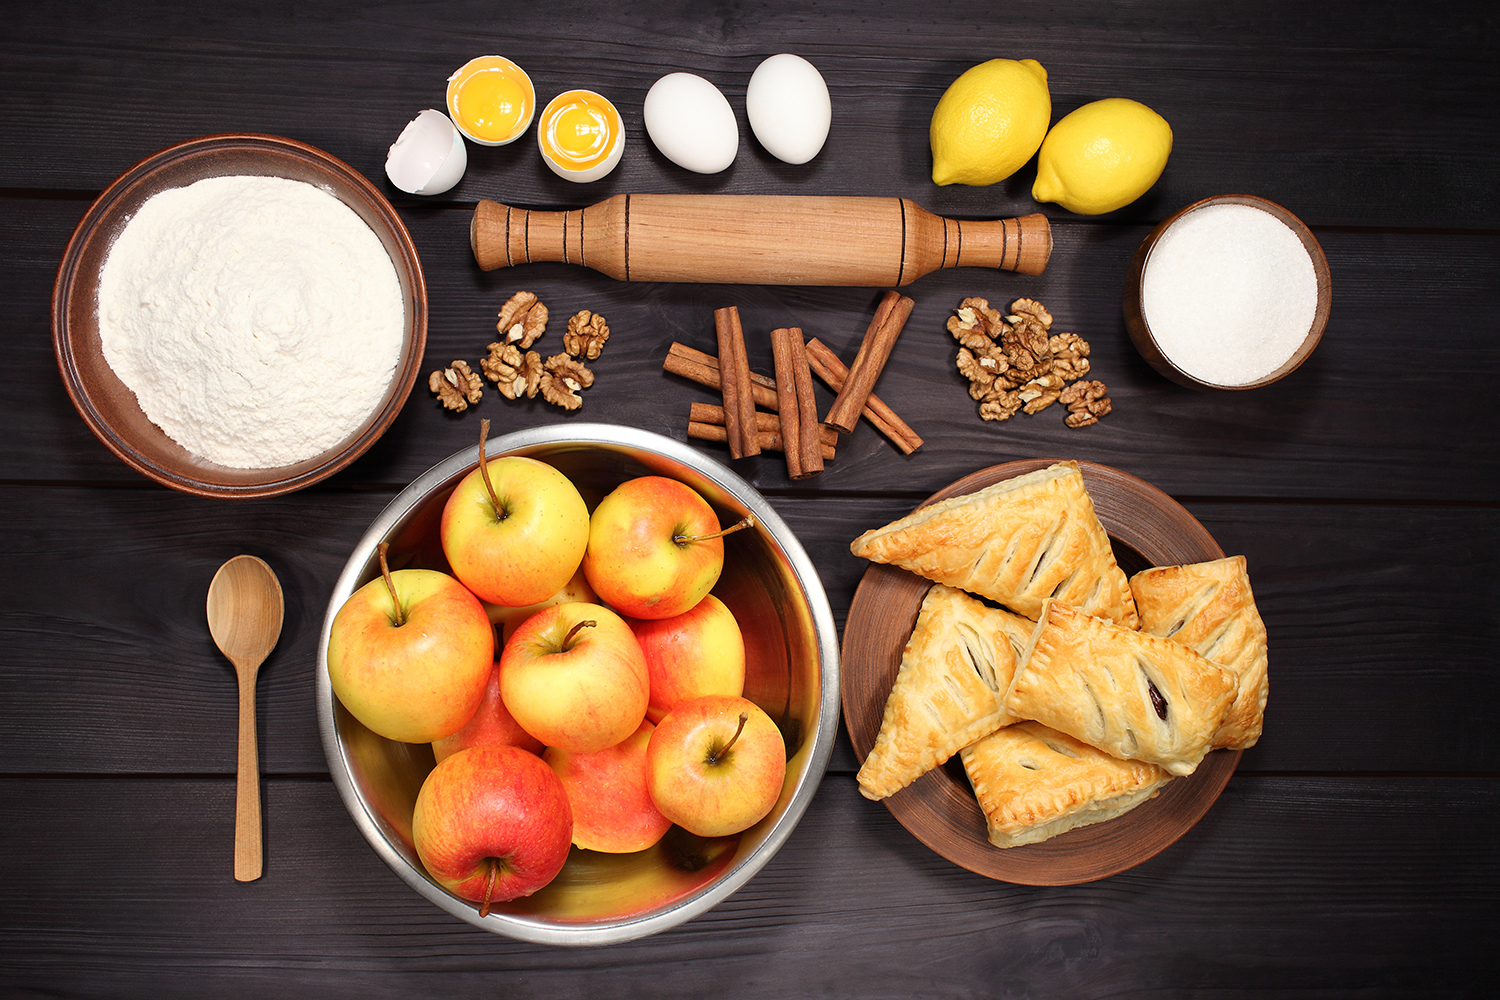 Set 12 photos Apple Pie and raw ingredients for baking. Sweet food series. Dessert. Top view example image 5